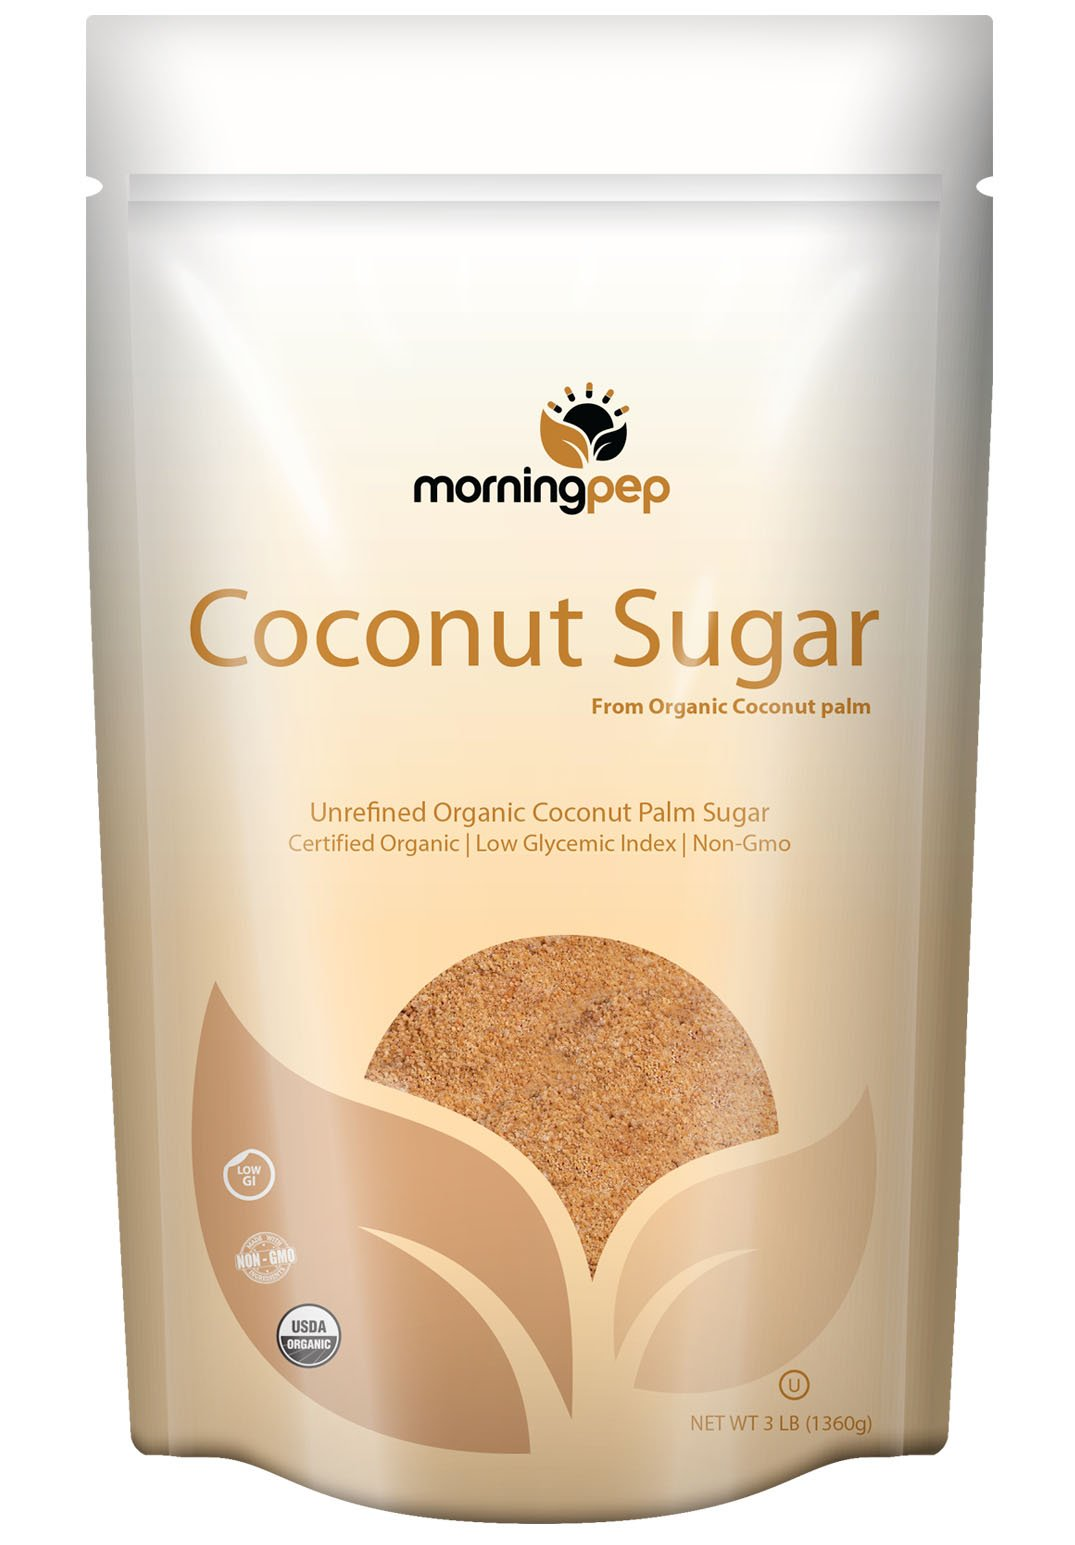 Morning Pep Coconut Palm Sugar USDA Certified Organic Gluten Free Non GMO Certified Kosher Large Bag, 6 lb (96 oz)